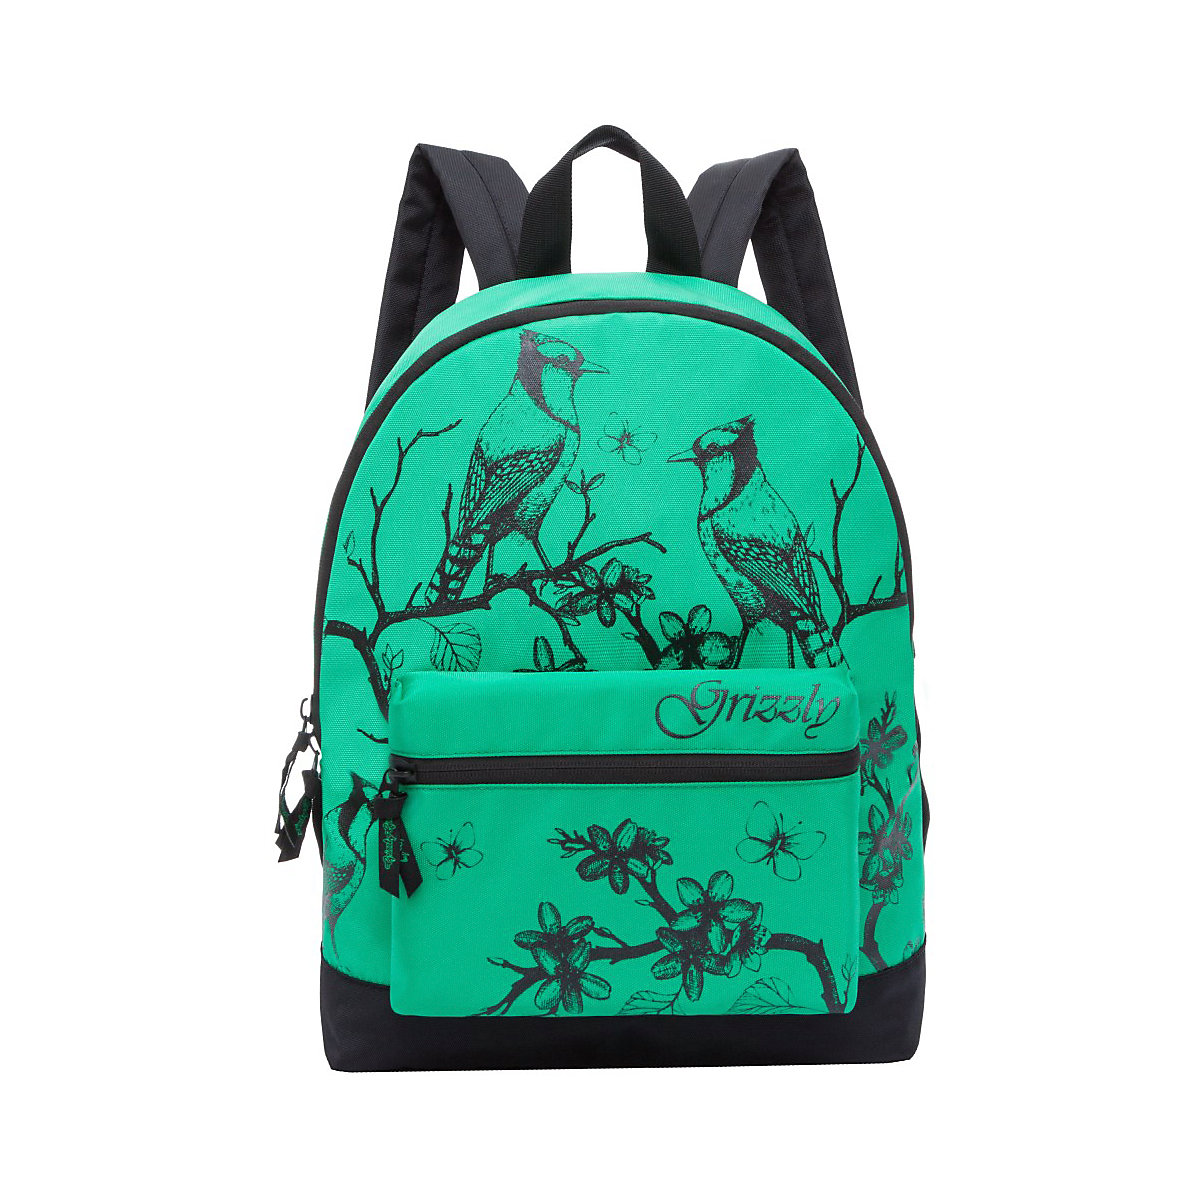 School Bags GRIZZLY 10521160 schoolbag backpack orthopedic bag for boy and girl animals flowers katekyo hitman reborn school bags anime rokudou mukuro hibari canvas messenger bag